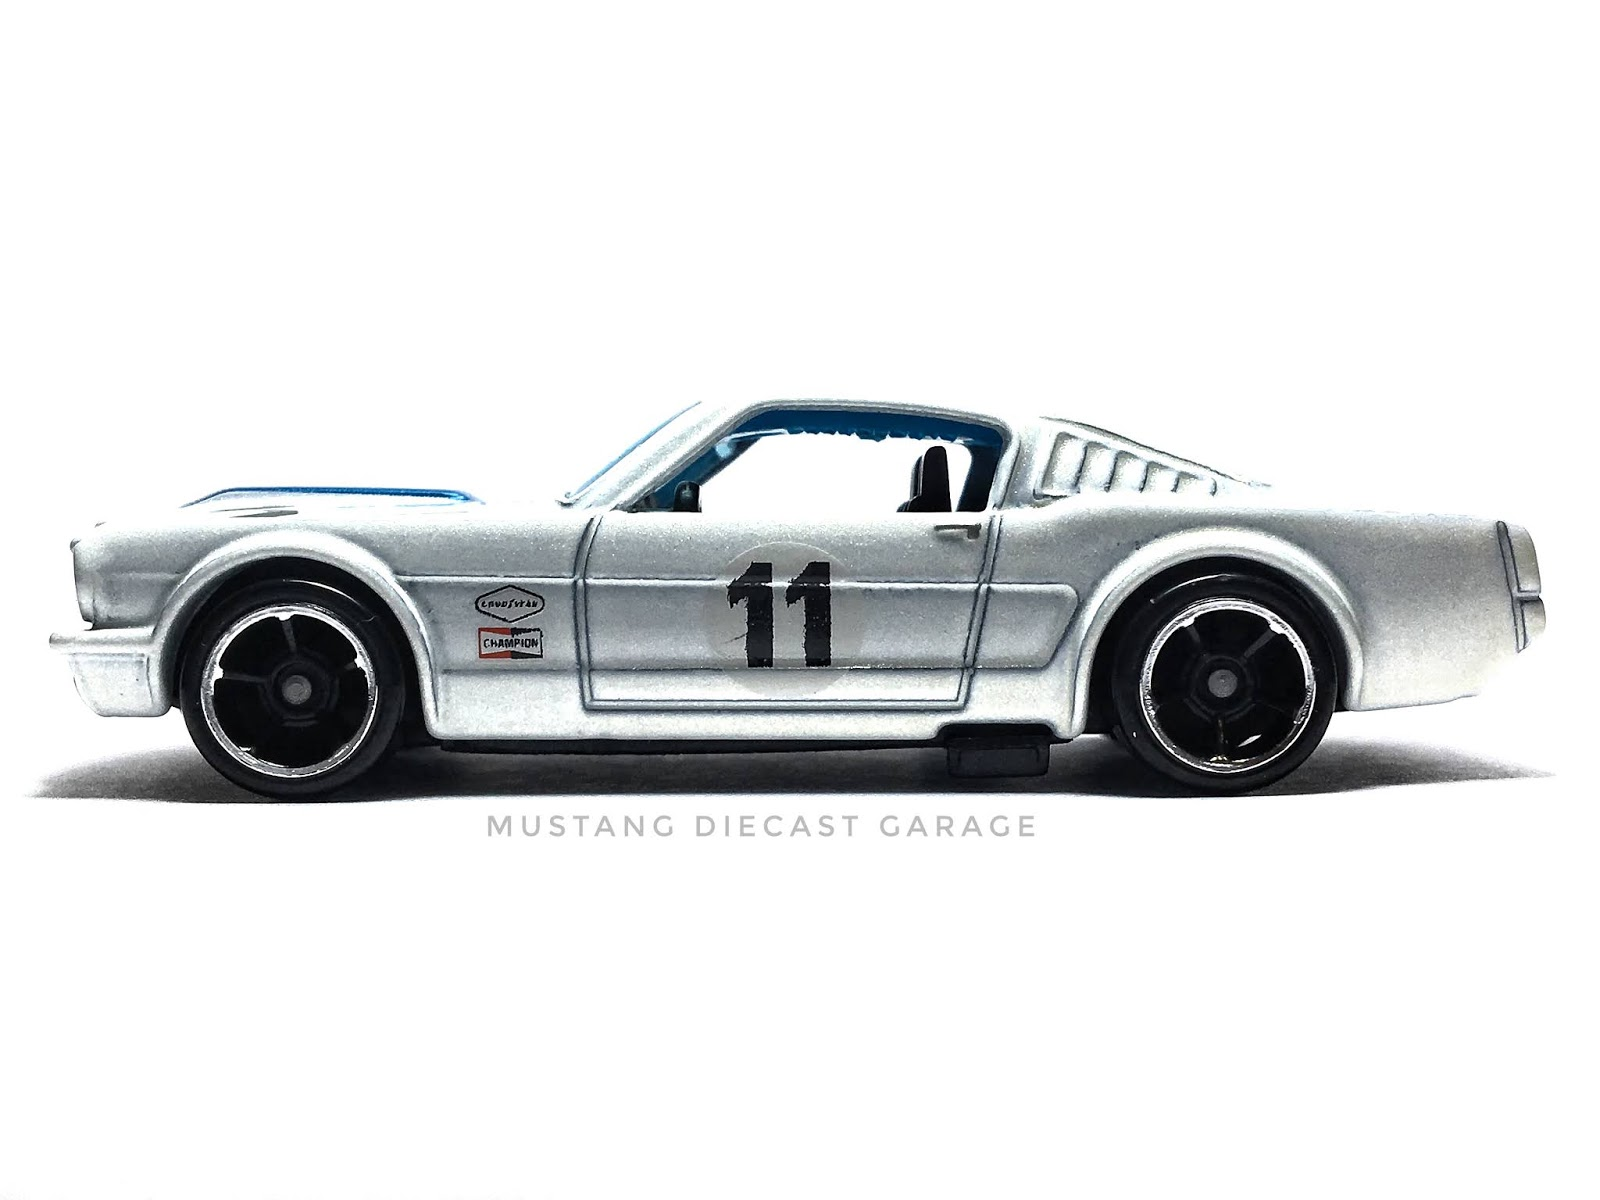 Learn more about the first model year ford mustang—which was actually 1965, so the model is often referred to as a 1964 1/2 mustang. Hot Wheels Ford Mustang Fastback Series 2008 2008 New Models 2008 New Models Sold In Japan 2008 First Editions À¸ª À¸'าว 1 64